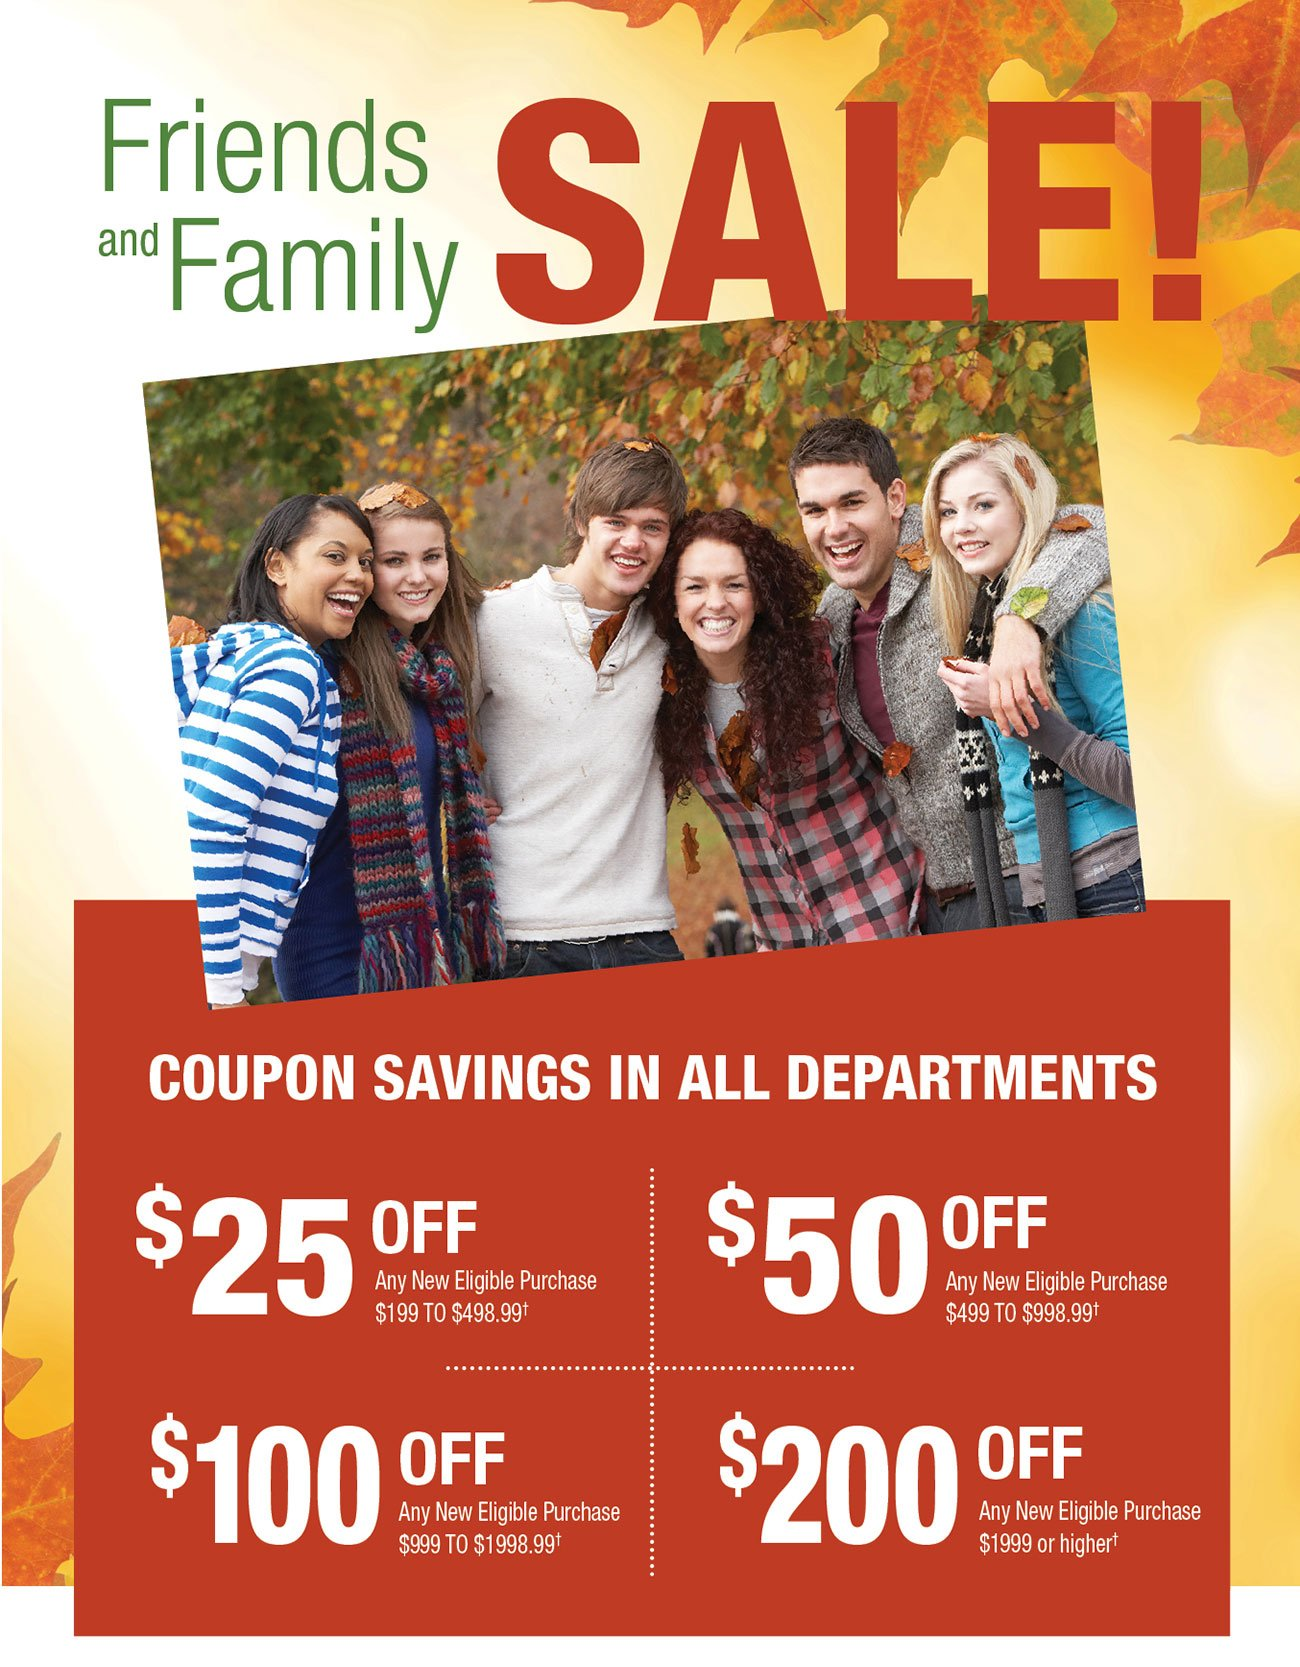 Friends-and-family-sale